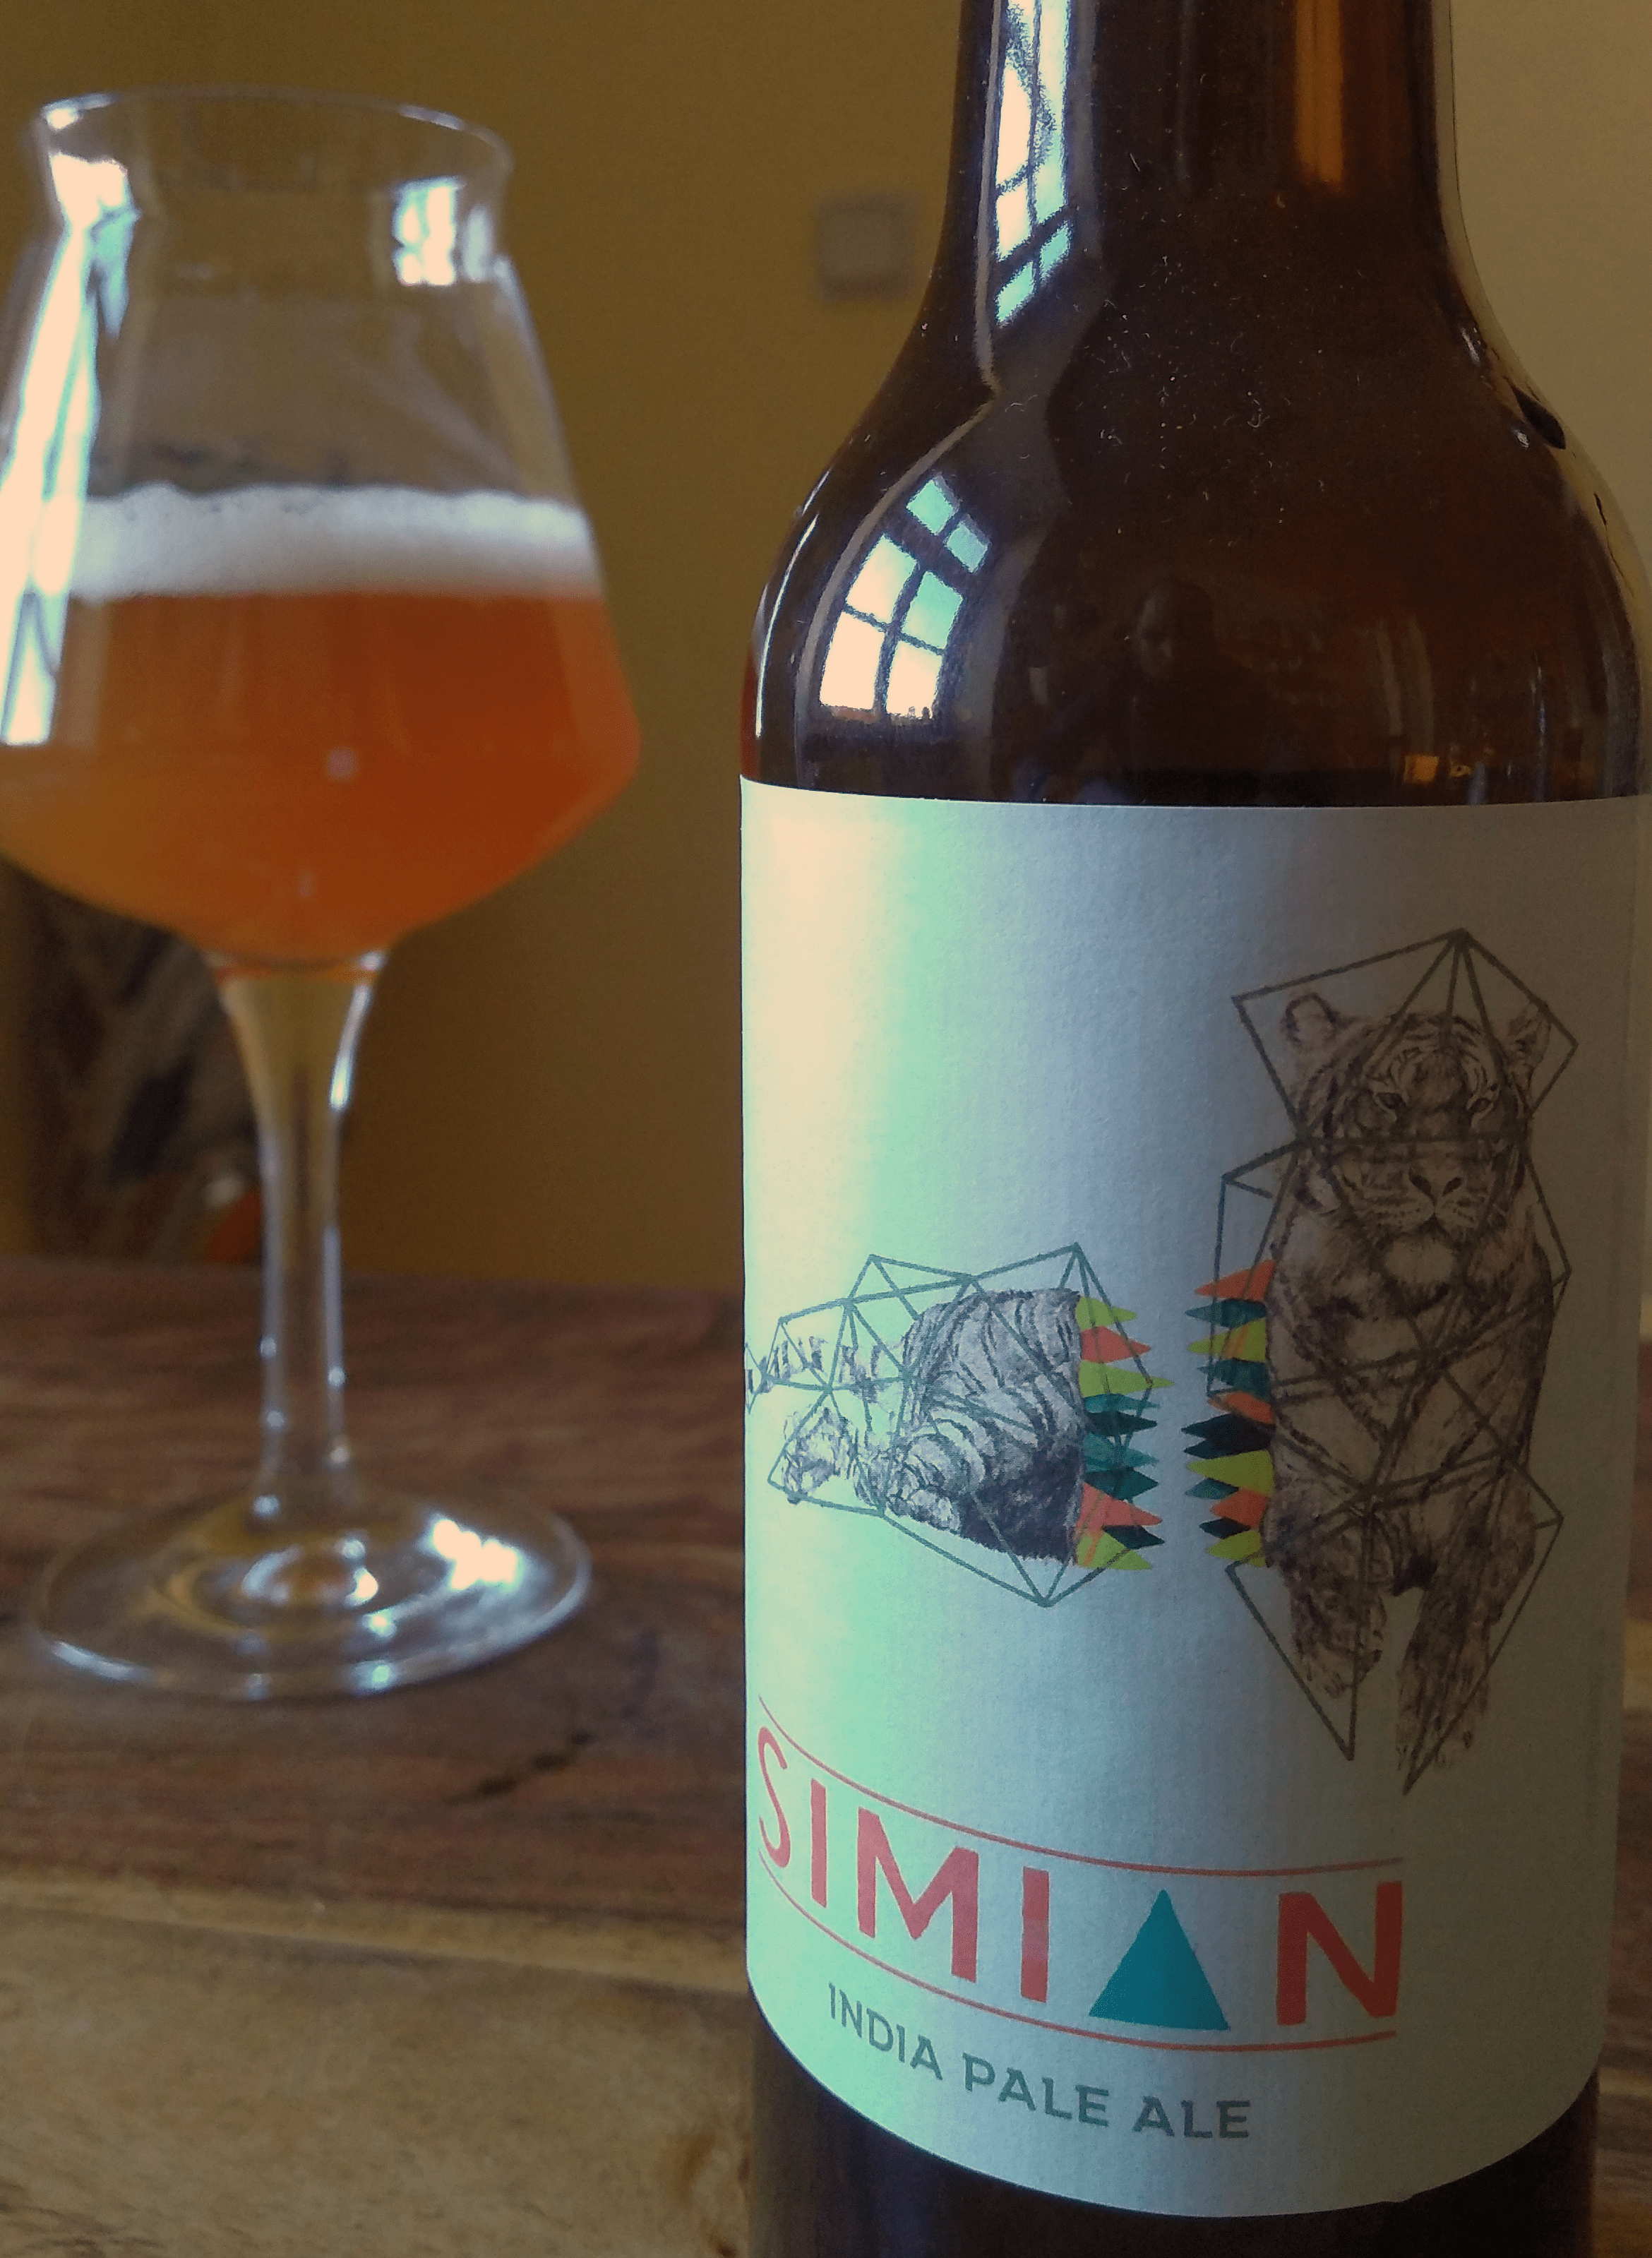 Simian Ales - India Pale Ale